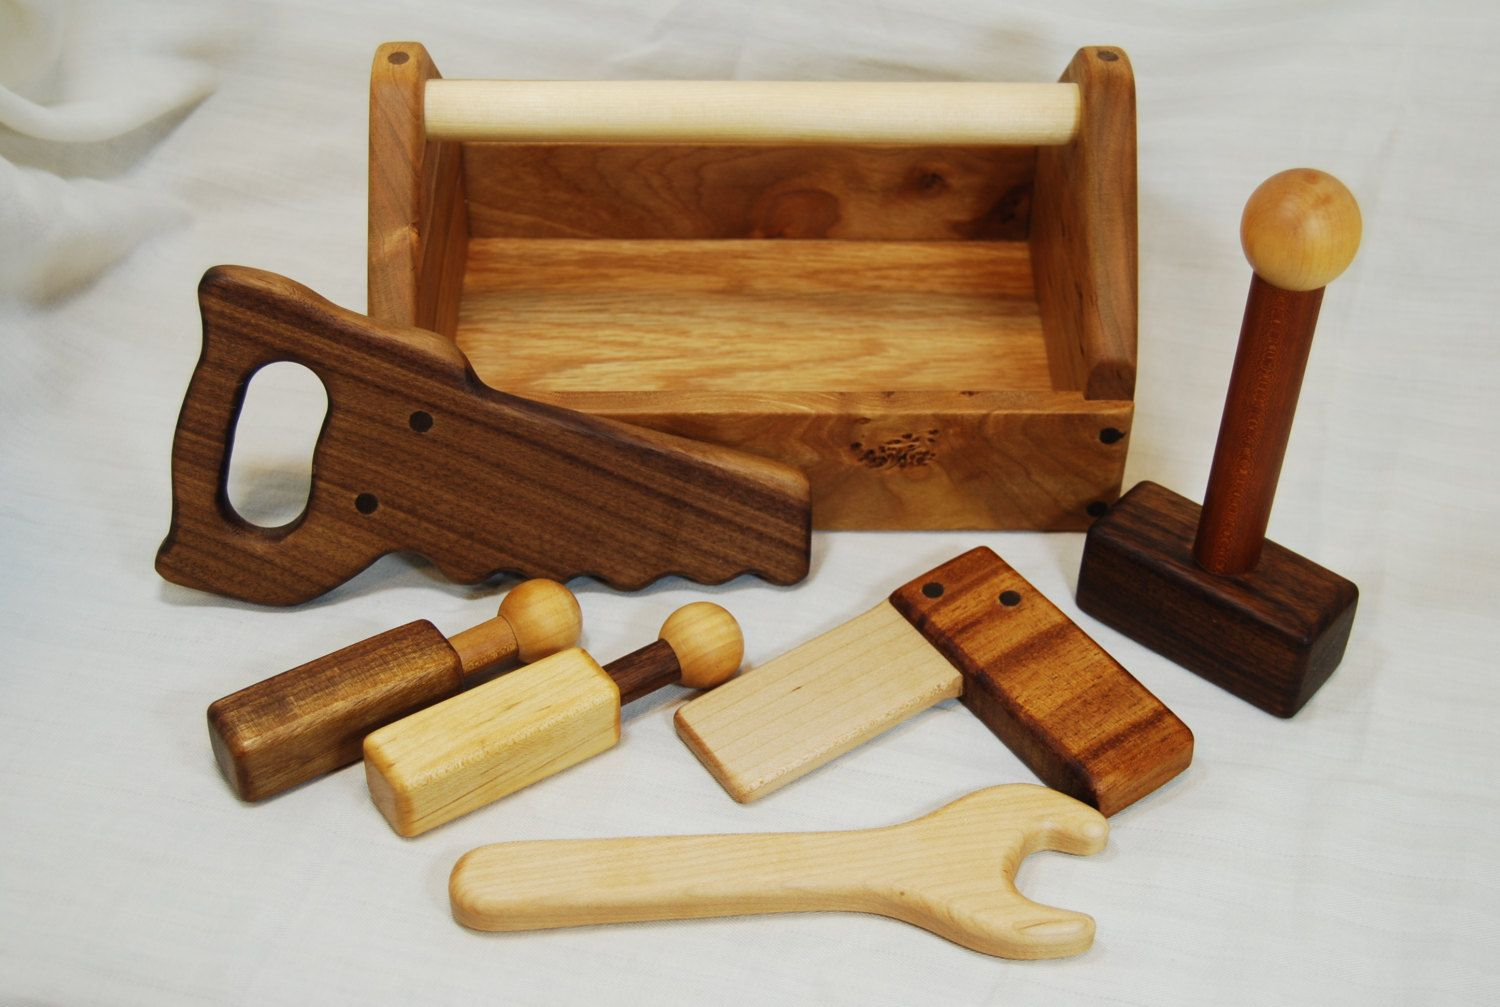 Heirloom Children's Wooden Toy Tool Set with Toolbox - all Hardwoods and Handmade by AHigherPlaneDesigns on Etsy